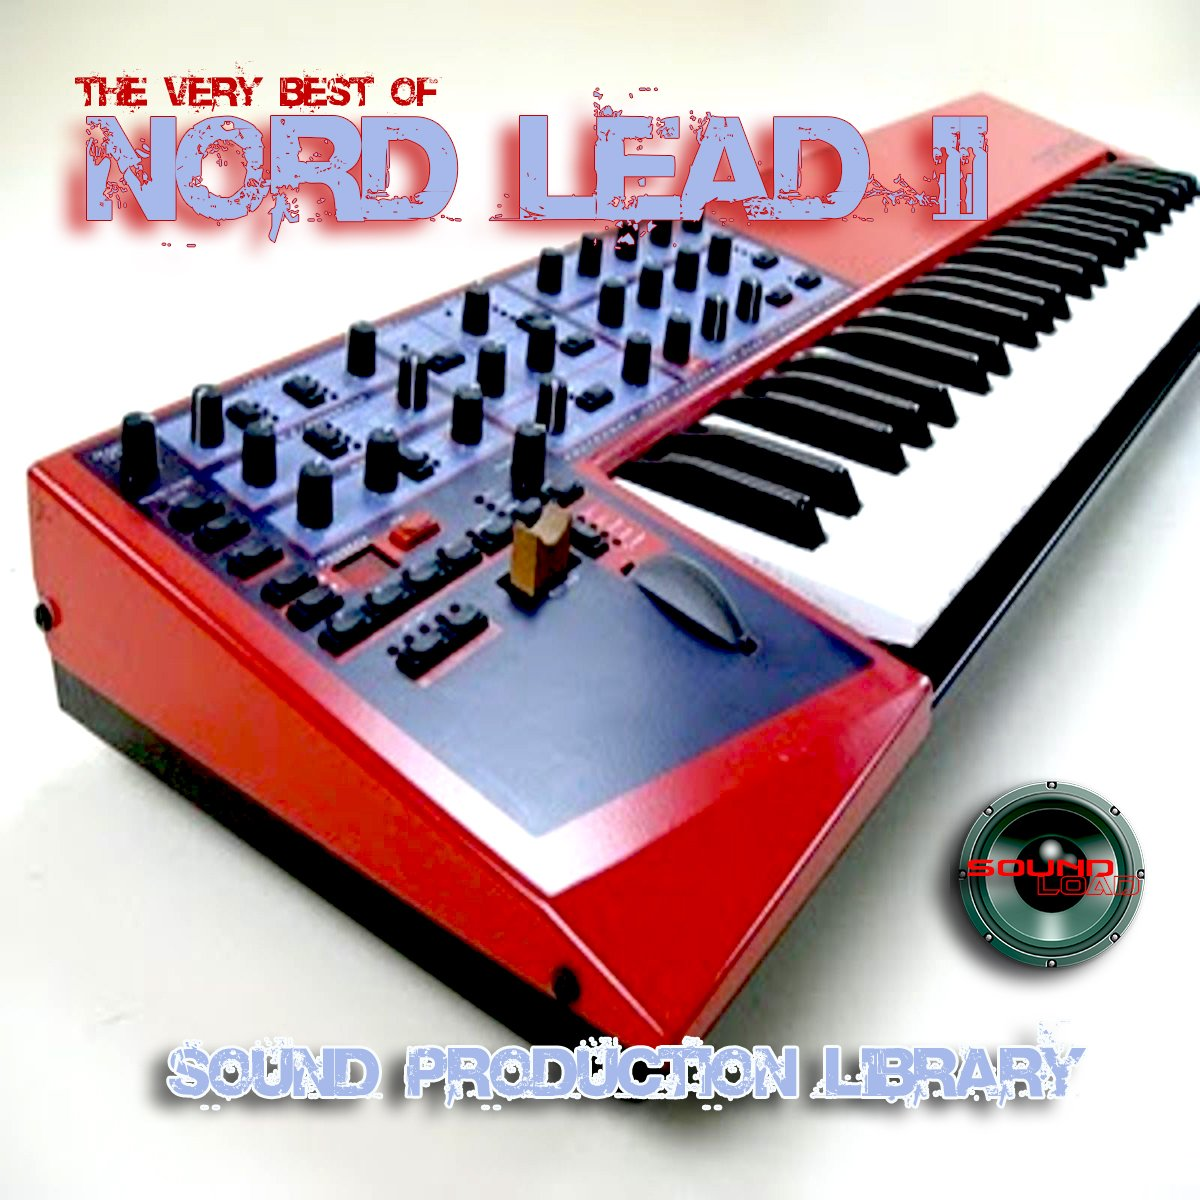 NORD LEAD II - Large unique original 24bit WAVE/Kontakt Multi-Layer Samples/Loops Library. FREE USA Continental Shipping on DVD or download;